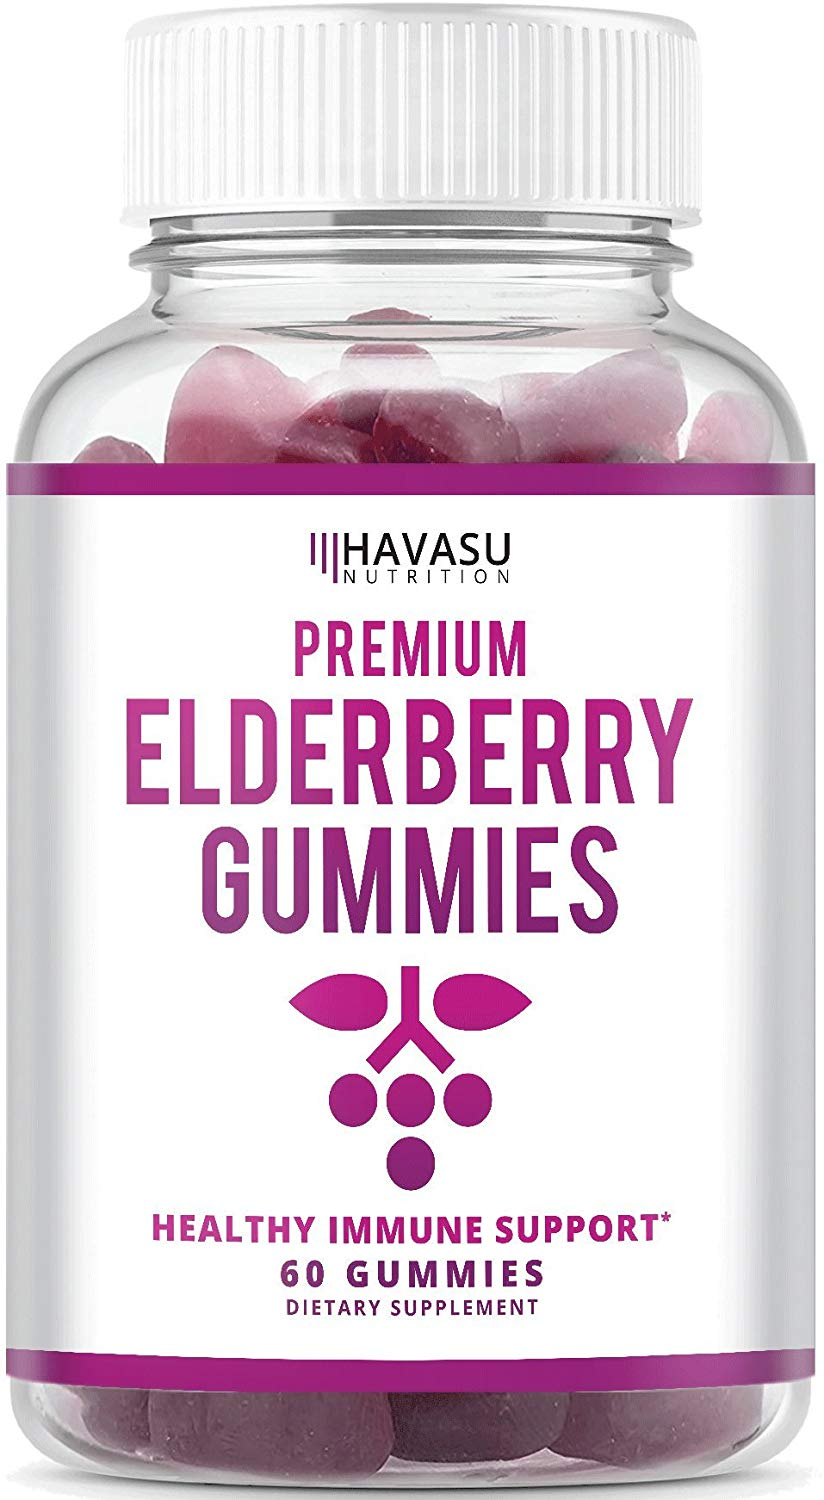 Havasu Nutrition Elderberry Gummies 100mg - 60 Gummies